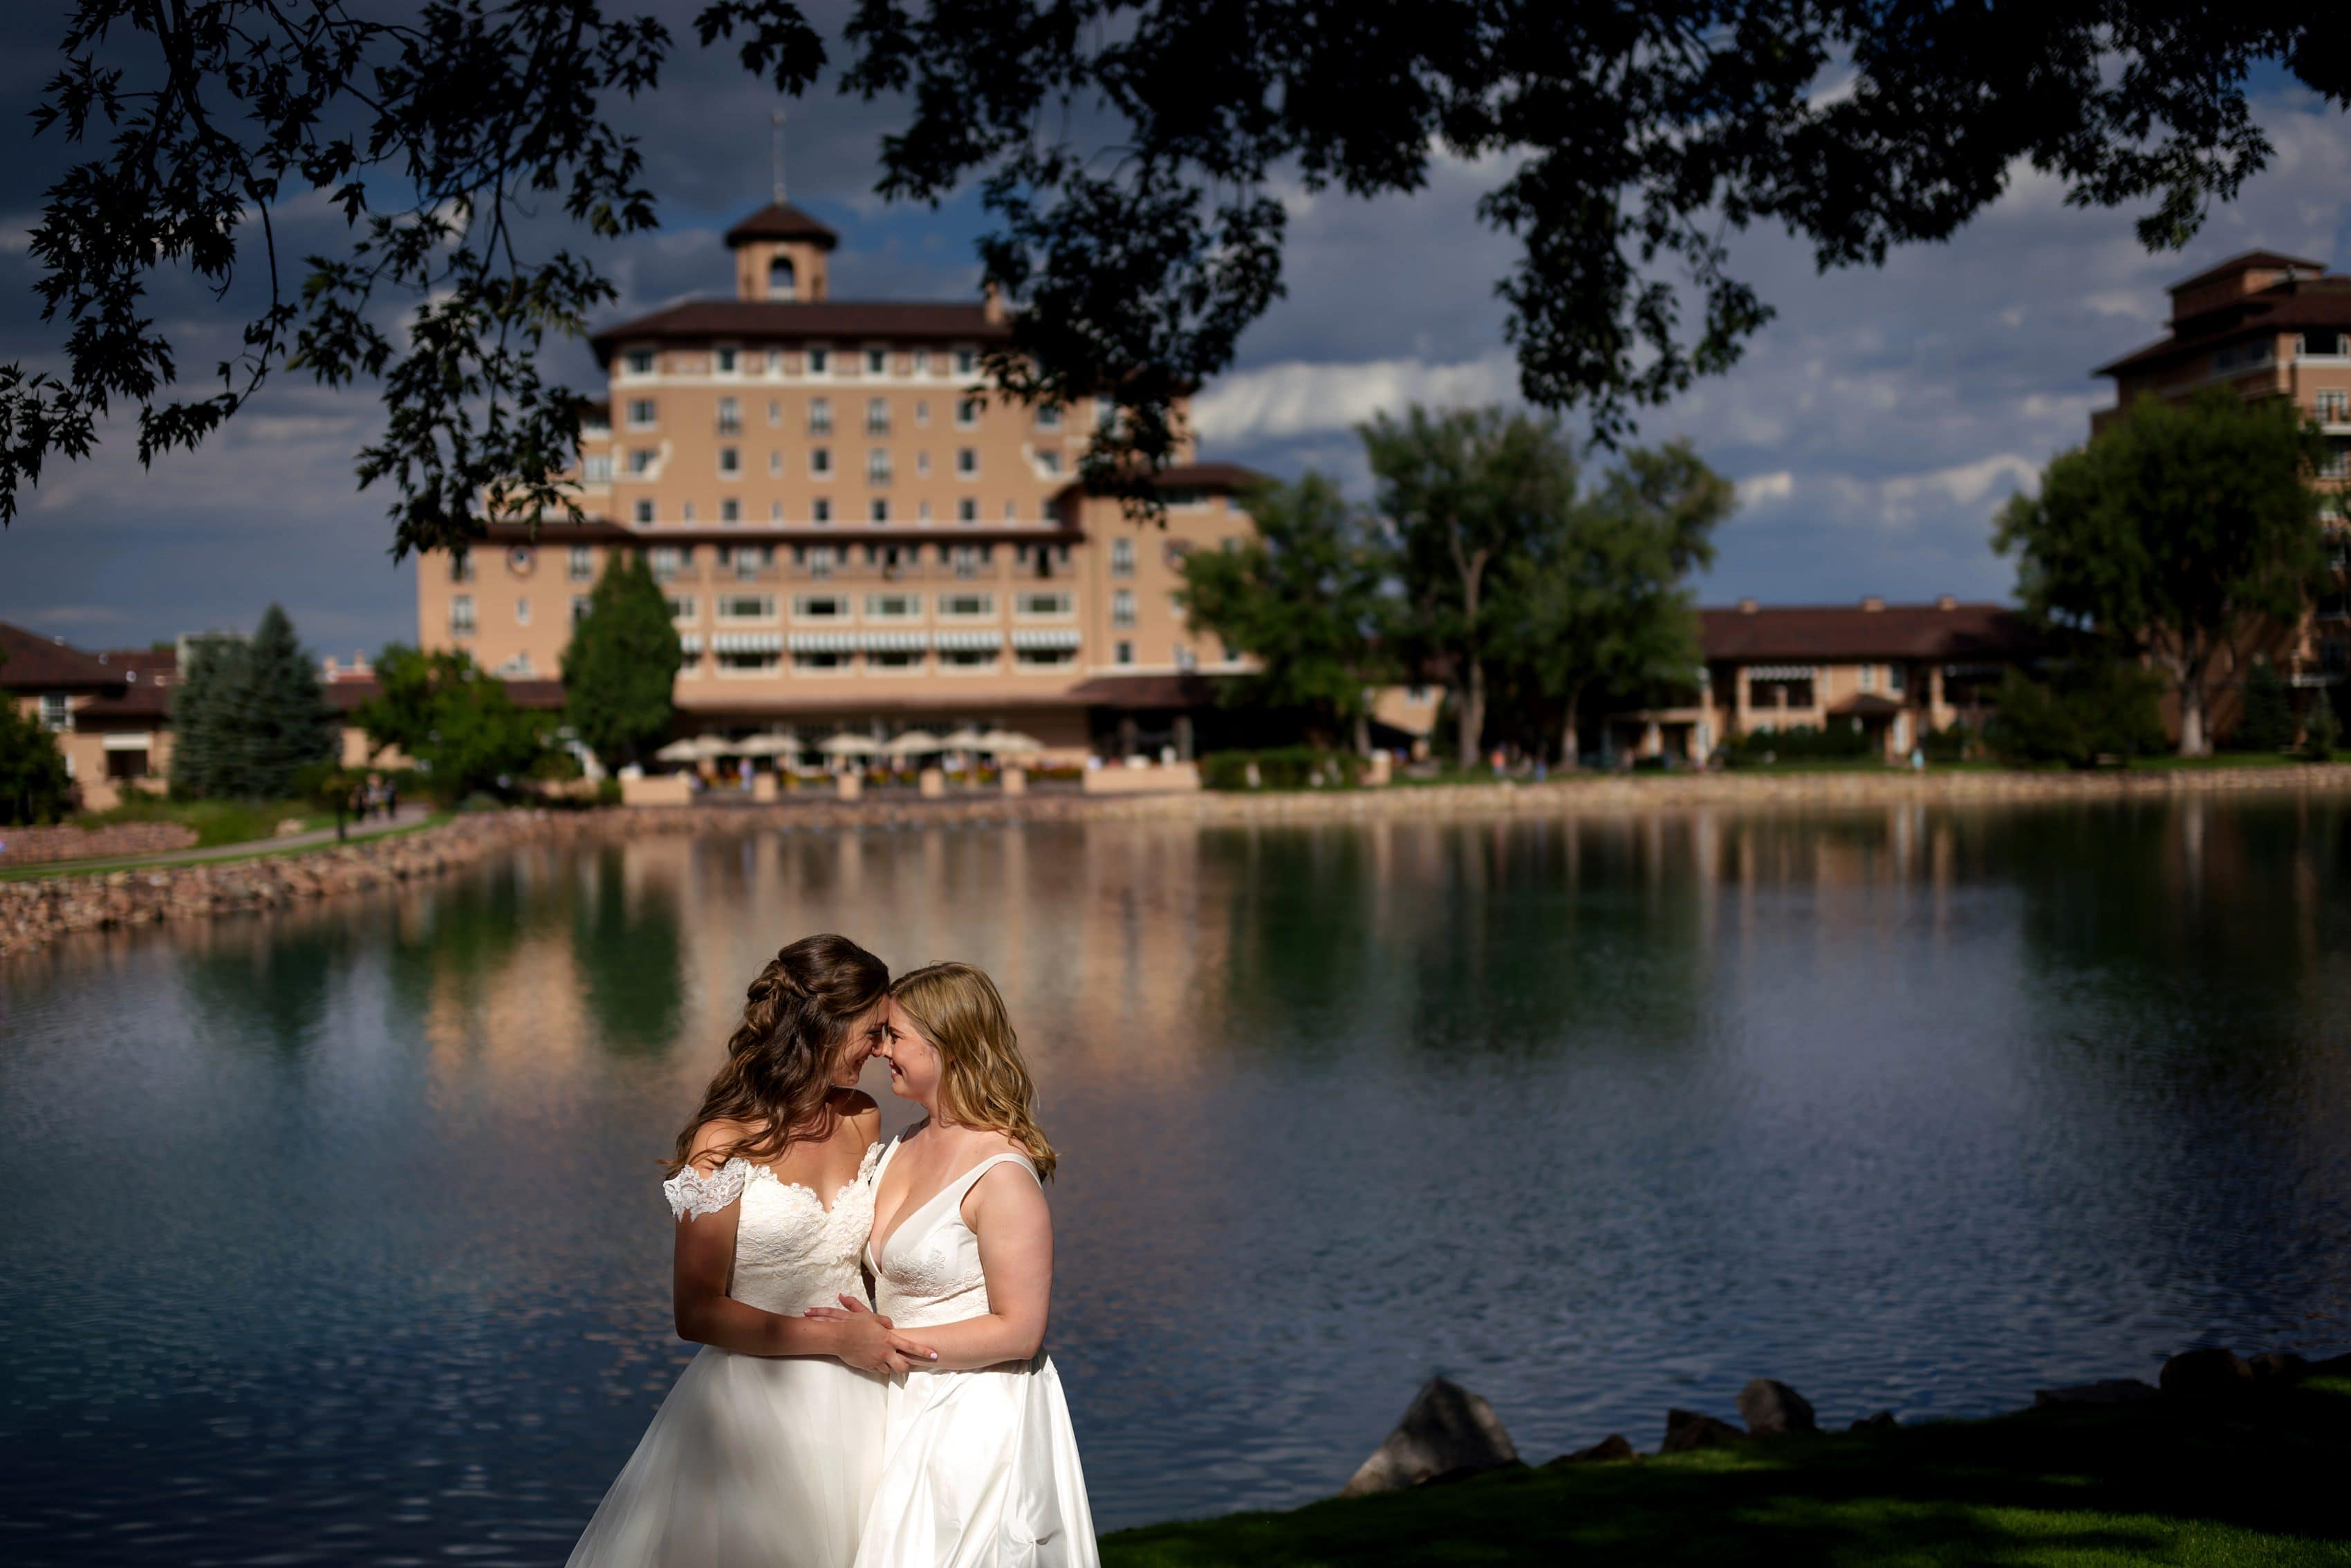 two brides pose together for wedding portraits at The Broadmoor in Colorado Springs, Colorado